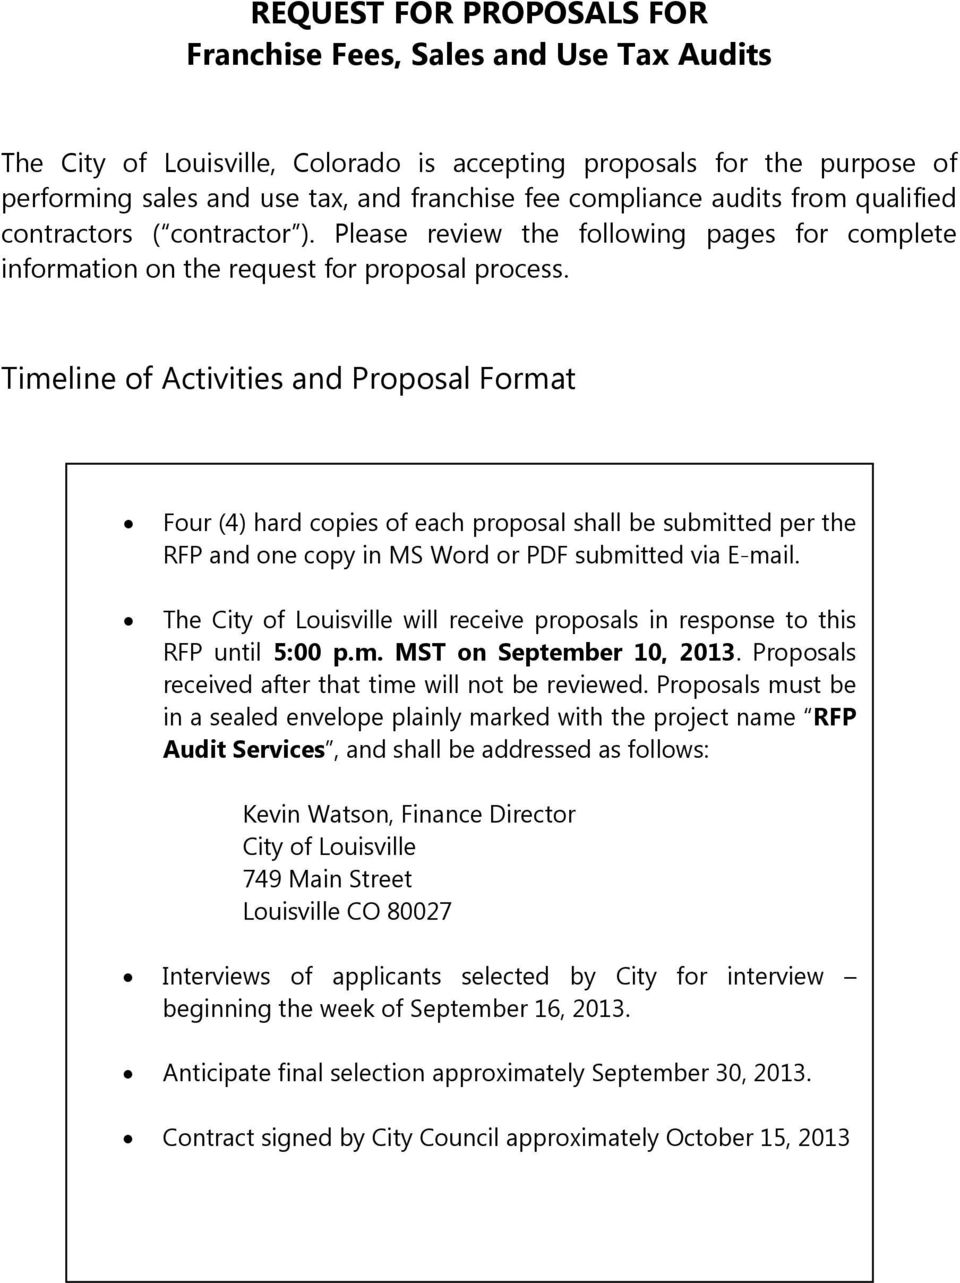 REQUEST FOR PROPOSALS FOR Franchise Fees, Sales and Use Tax Audits - PDF